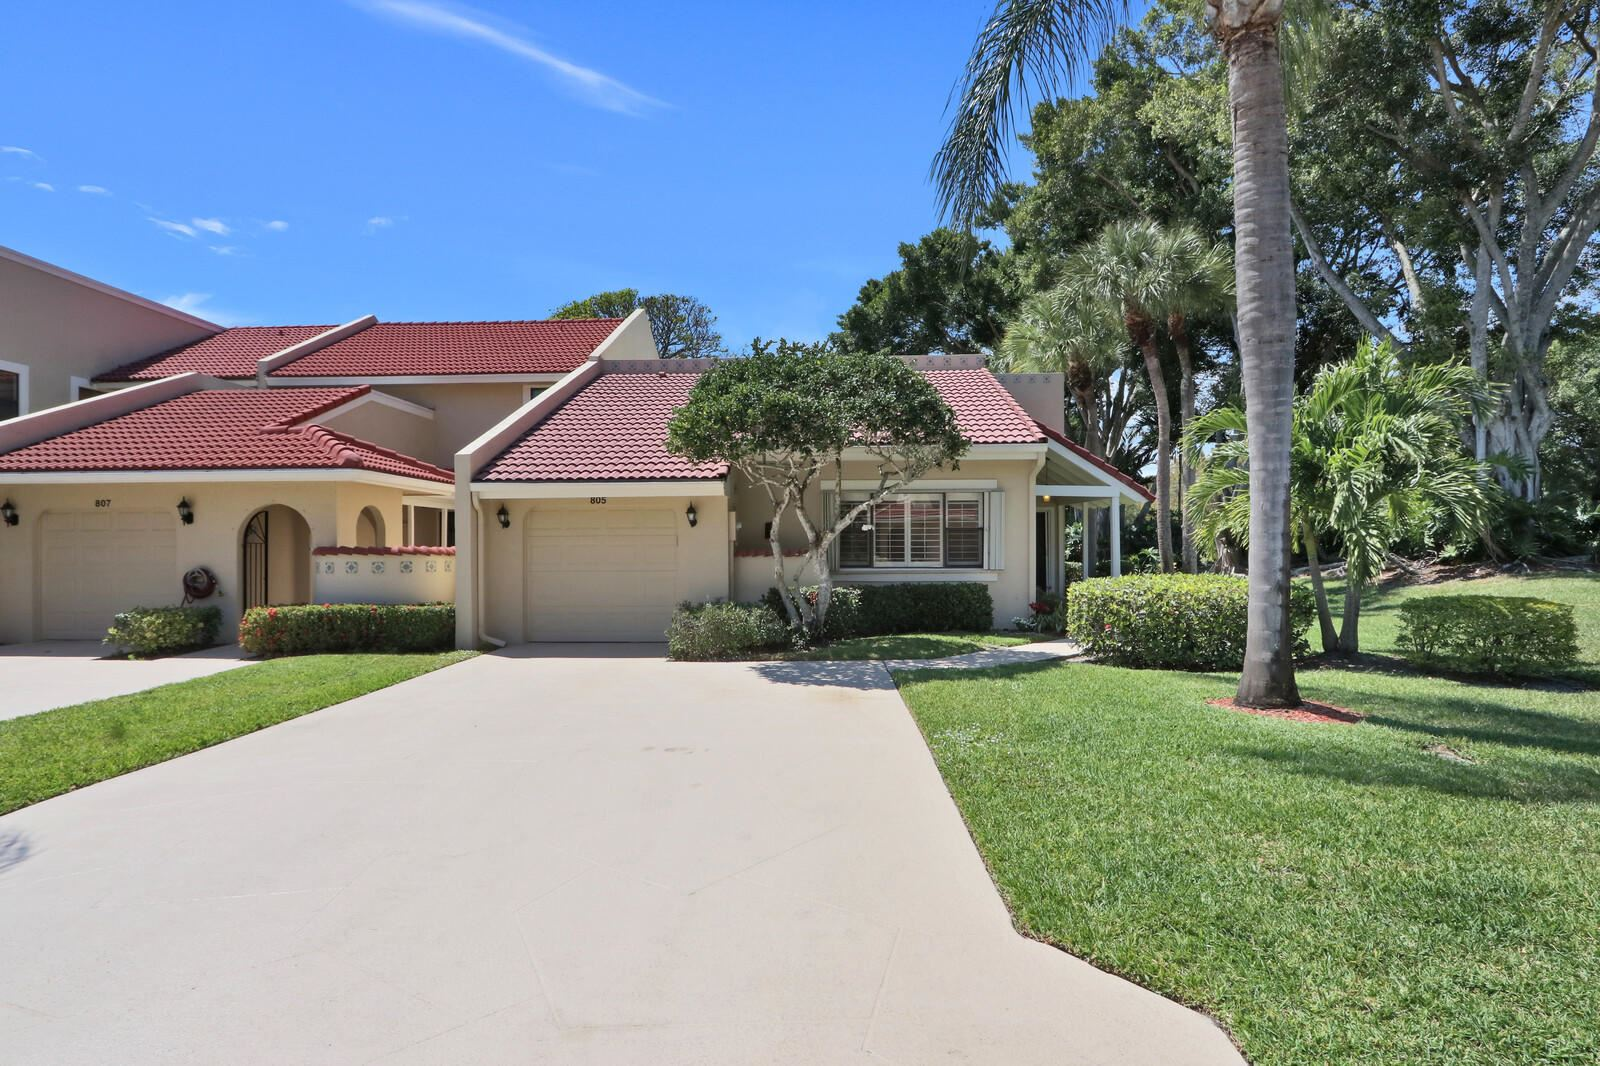 805 Windermere Way, Palm Beach Gardens, FL 33418 - MLS#: RX-10706795